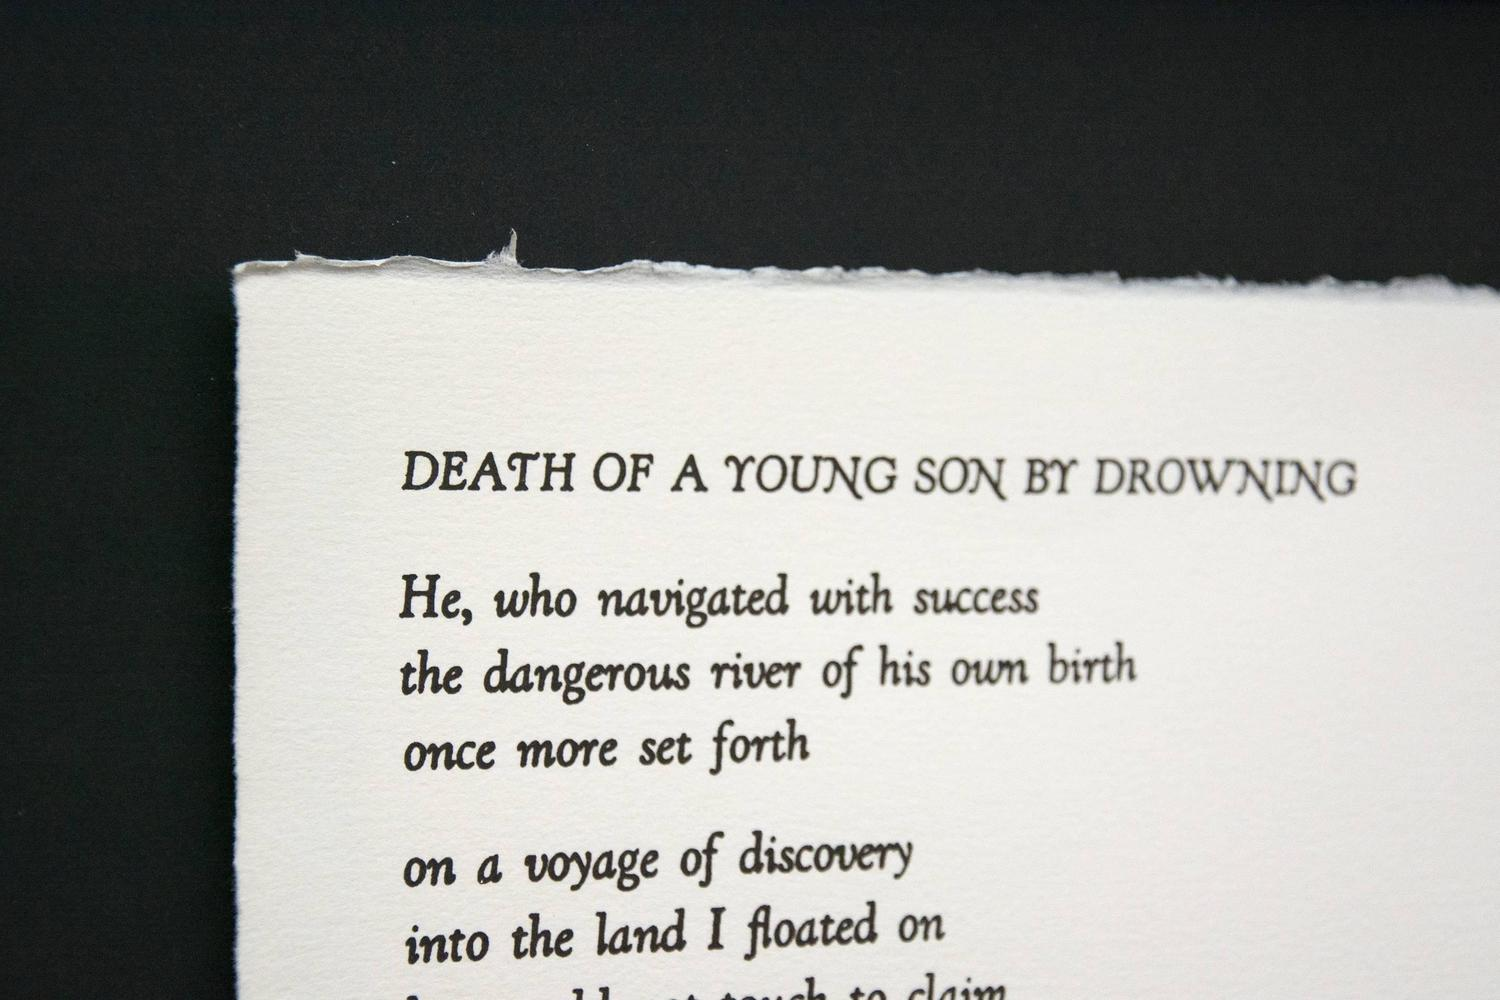 an interpretation of death of a young son by drowning a poem by margaret atwood Page for margaret atwood's poetry site includes poems, articles, study materials,  and reading group questions  death of a young son by drowning.